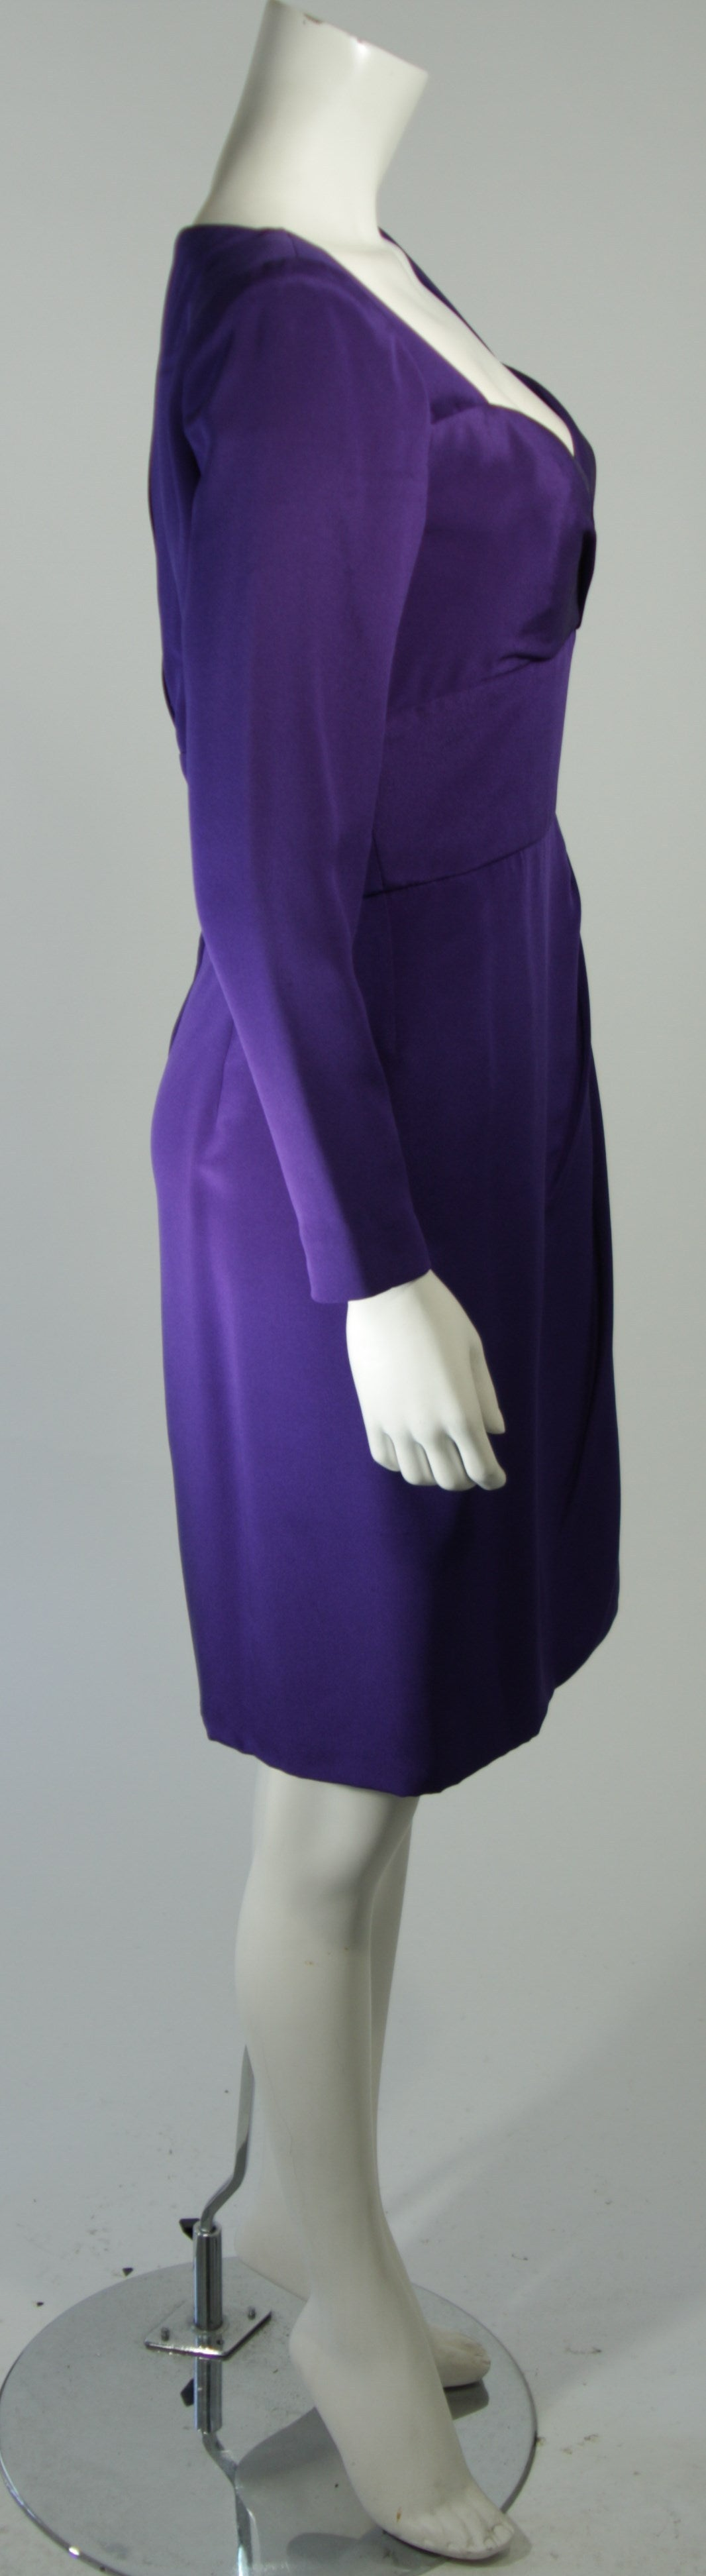 Travilla Purple Silk Long Sleeve Cocktail Dress with Draping Size 8 For Sale 2